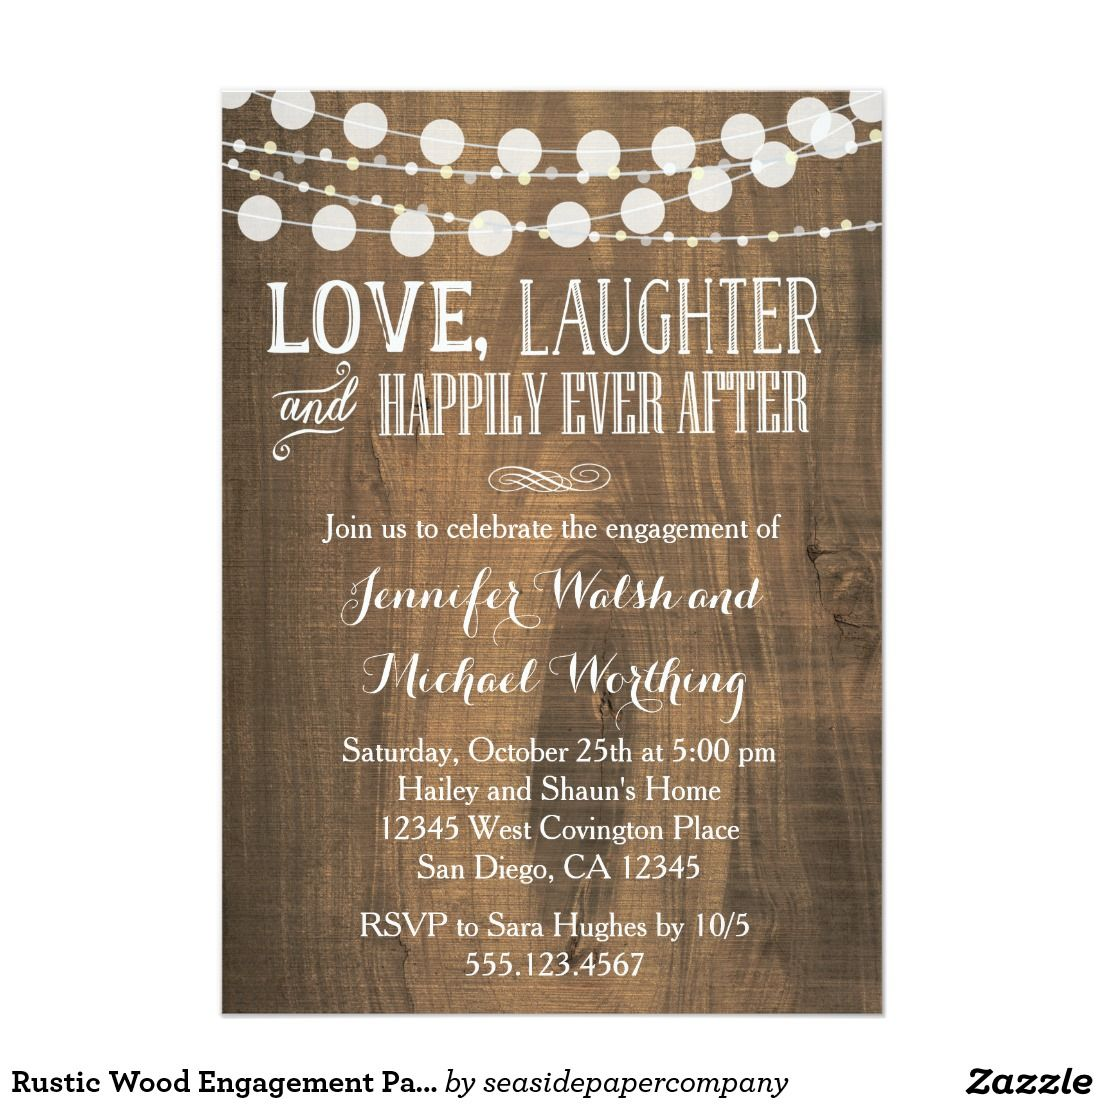 Rustic wood engagement party invitation engagement party for Invitation for engagement party